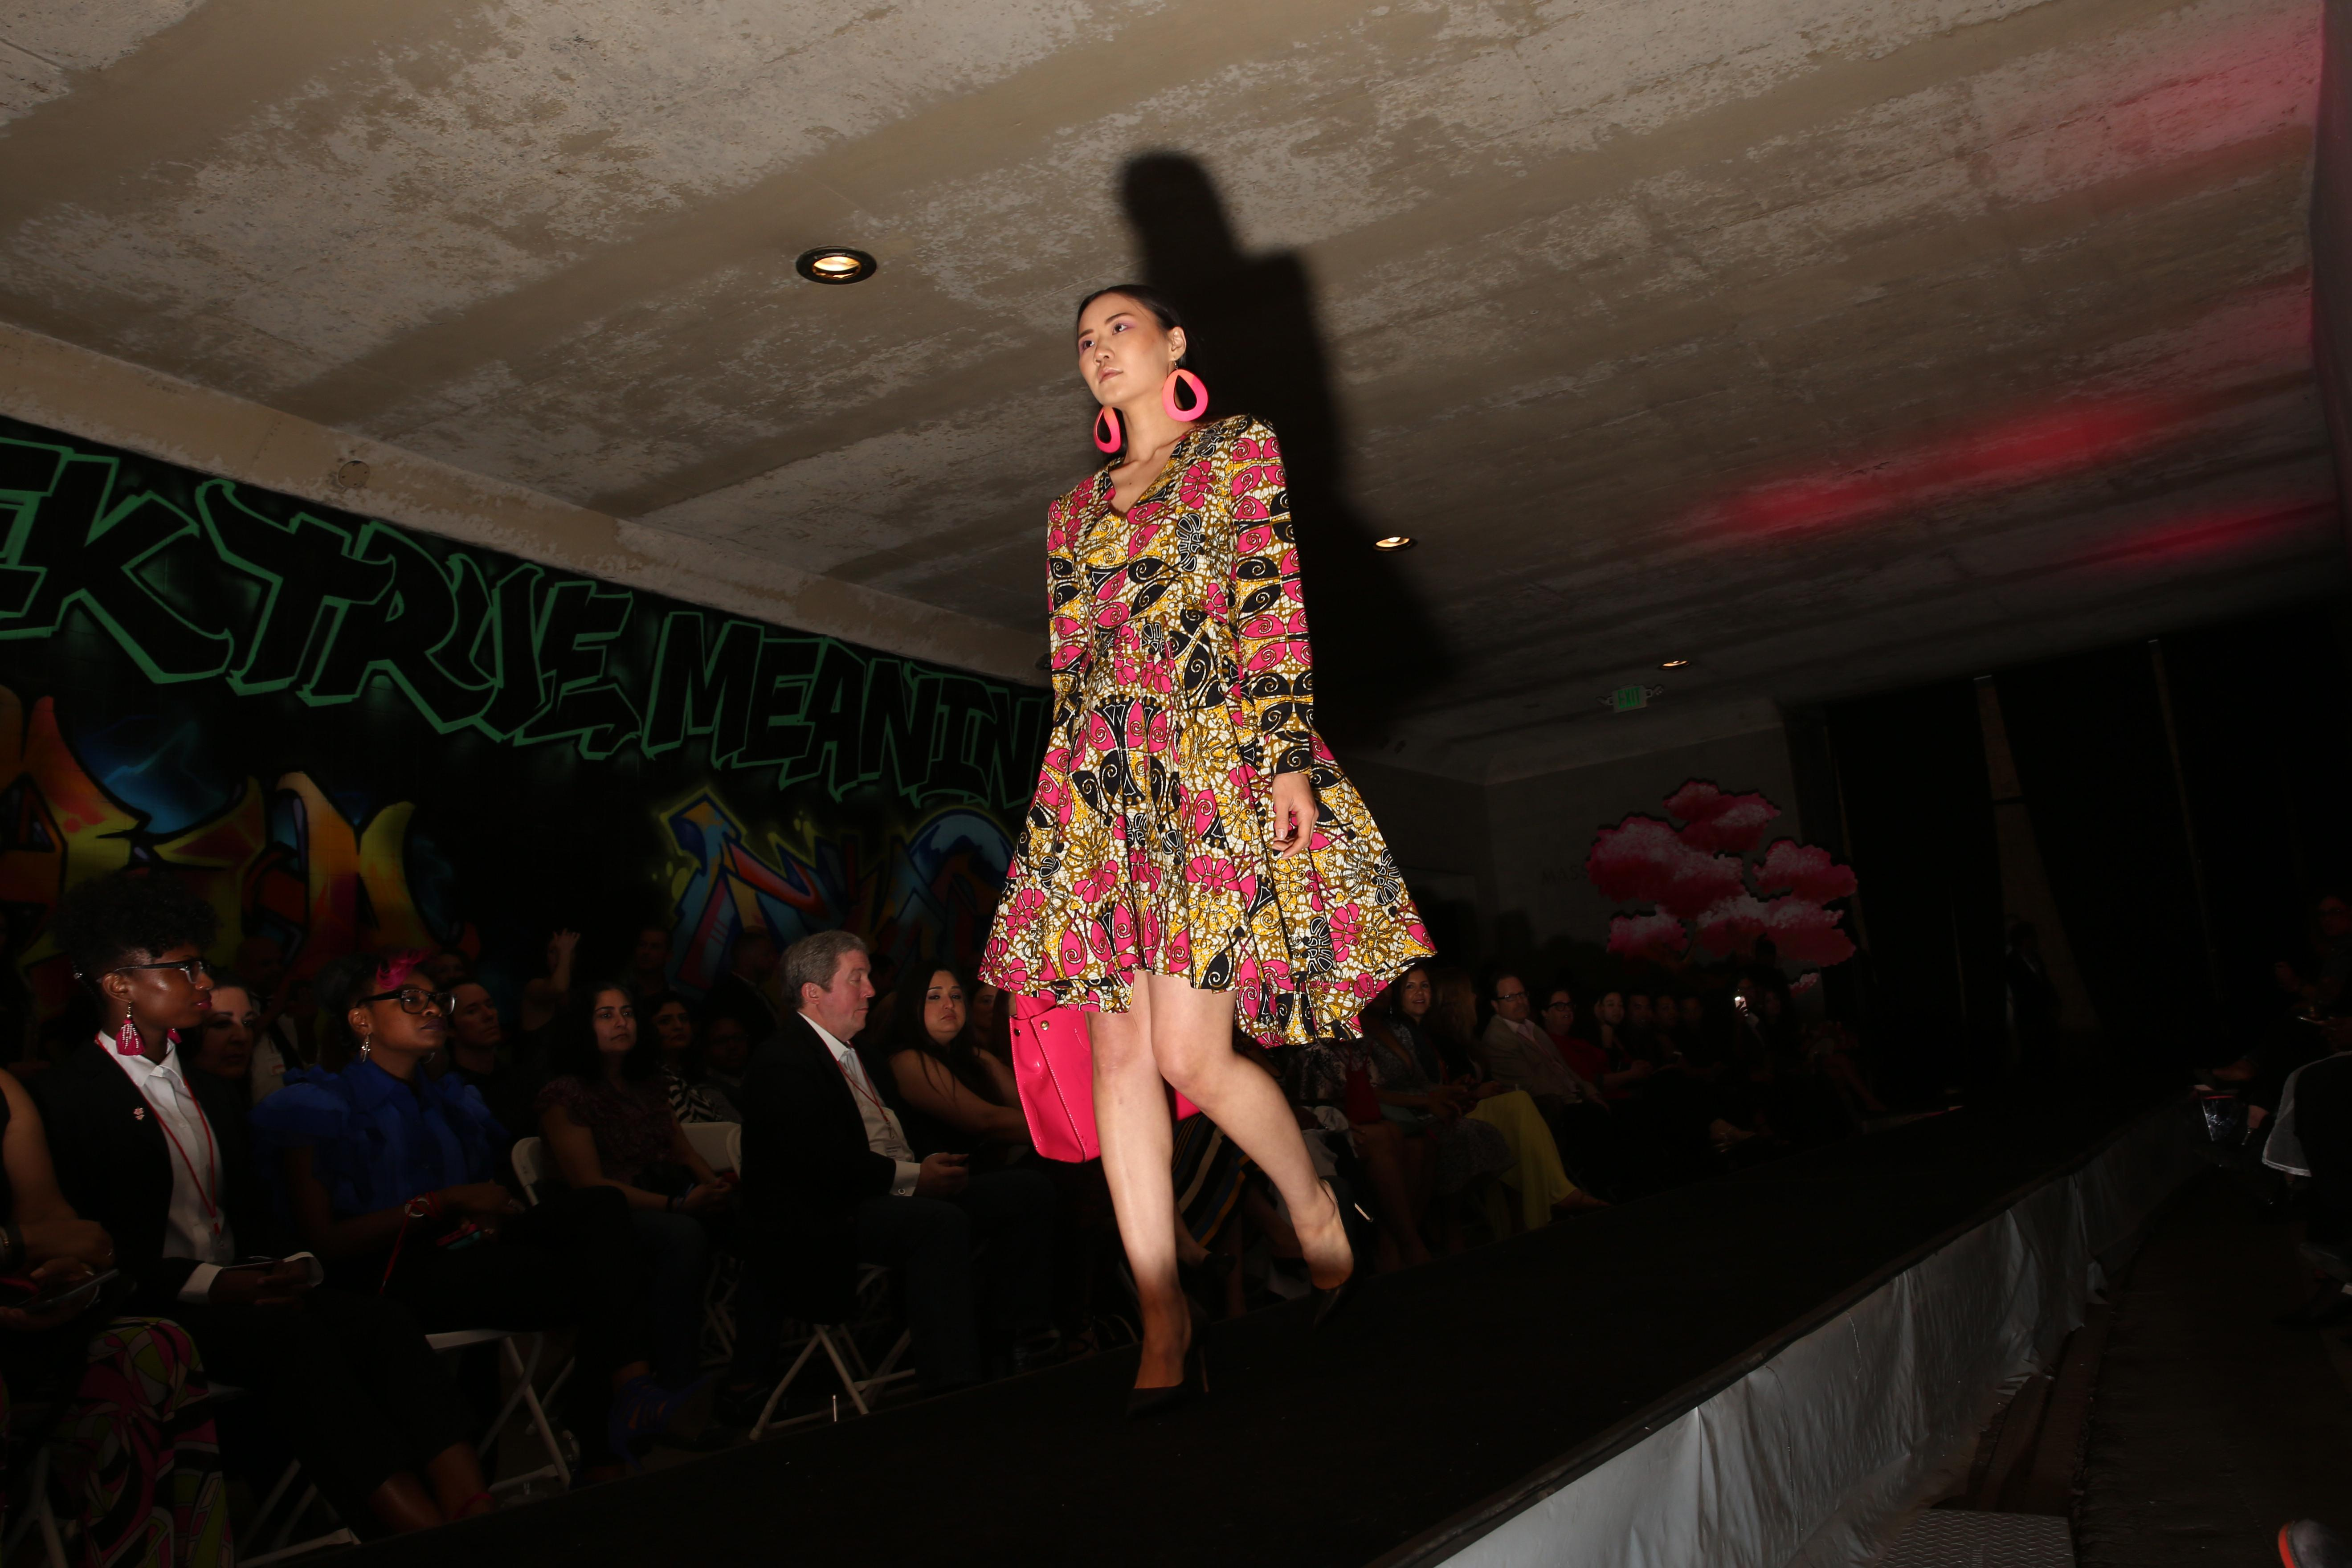 Dupont Underground is one of D.C.'s coolest art spaces, but on April 15 all eyes were on the runway for 'Underneath it All' - the space's first fashion show in conjunction with the National Cherry Blossom Festival. The evening featured several different local designers, all with unique collections. (Amanda Andrade-Rhoades/DC Refined)